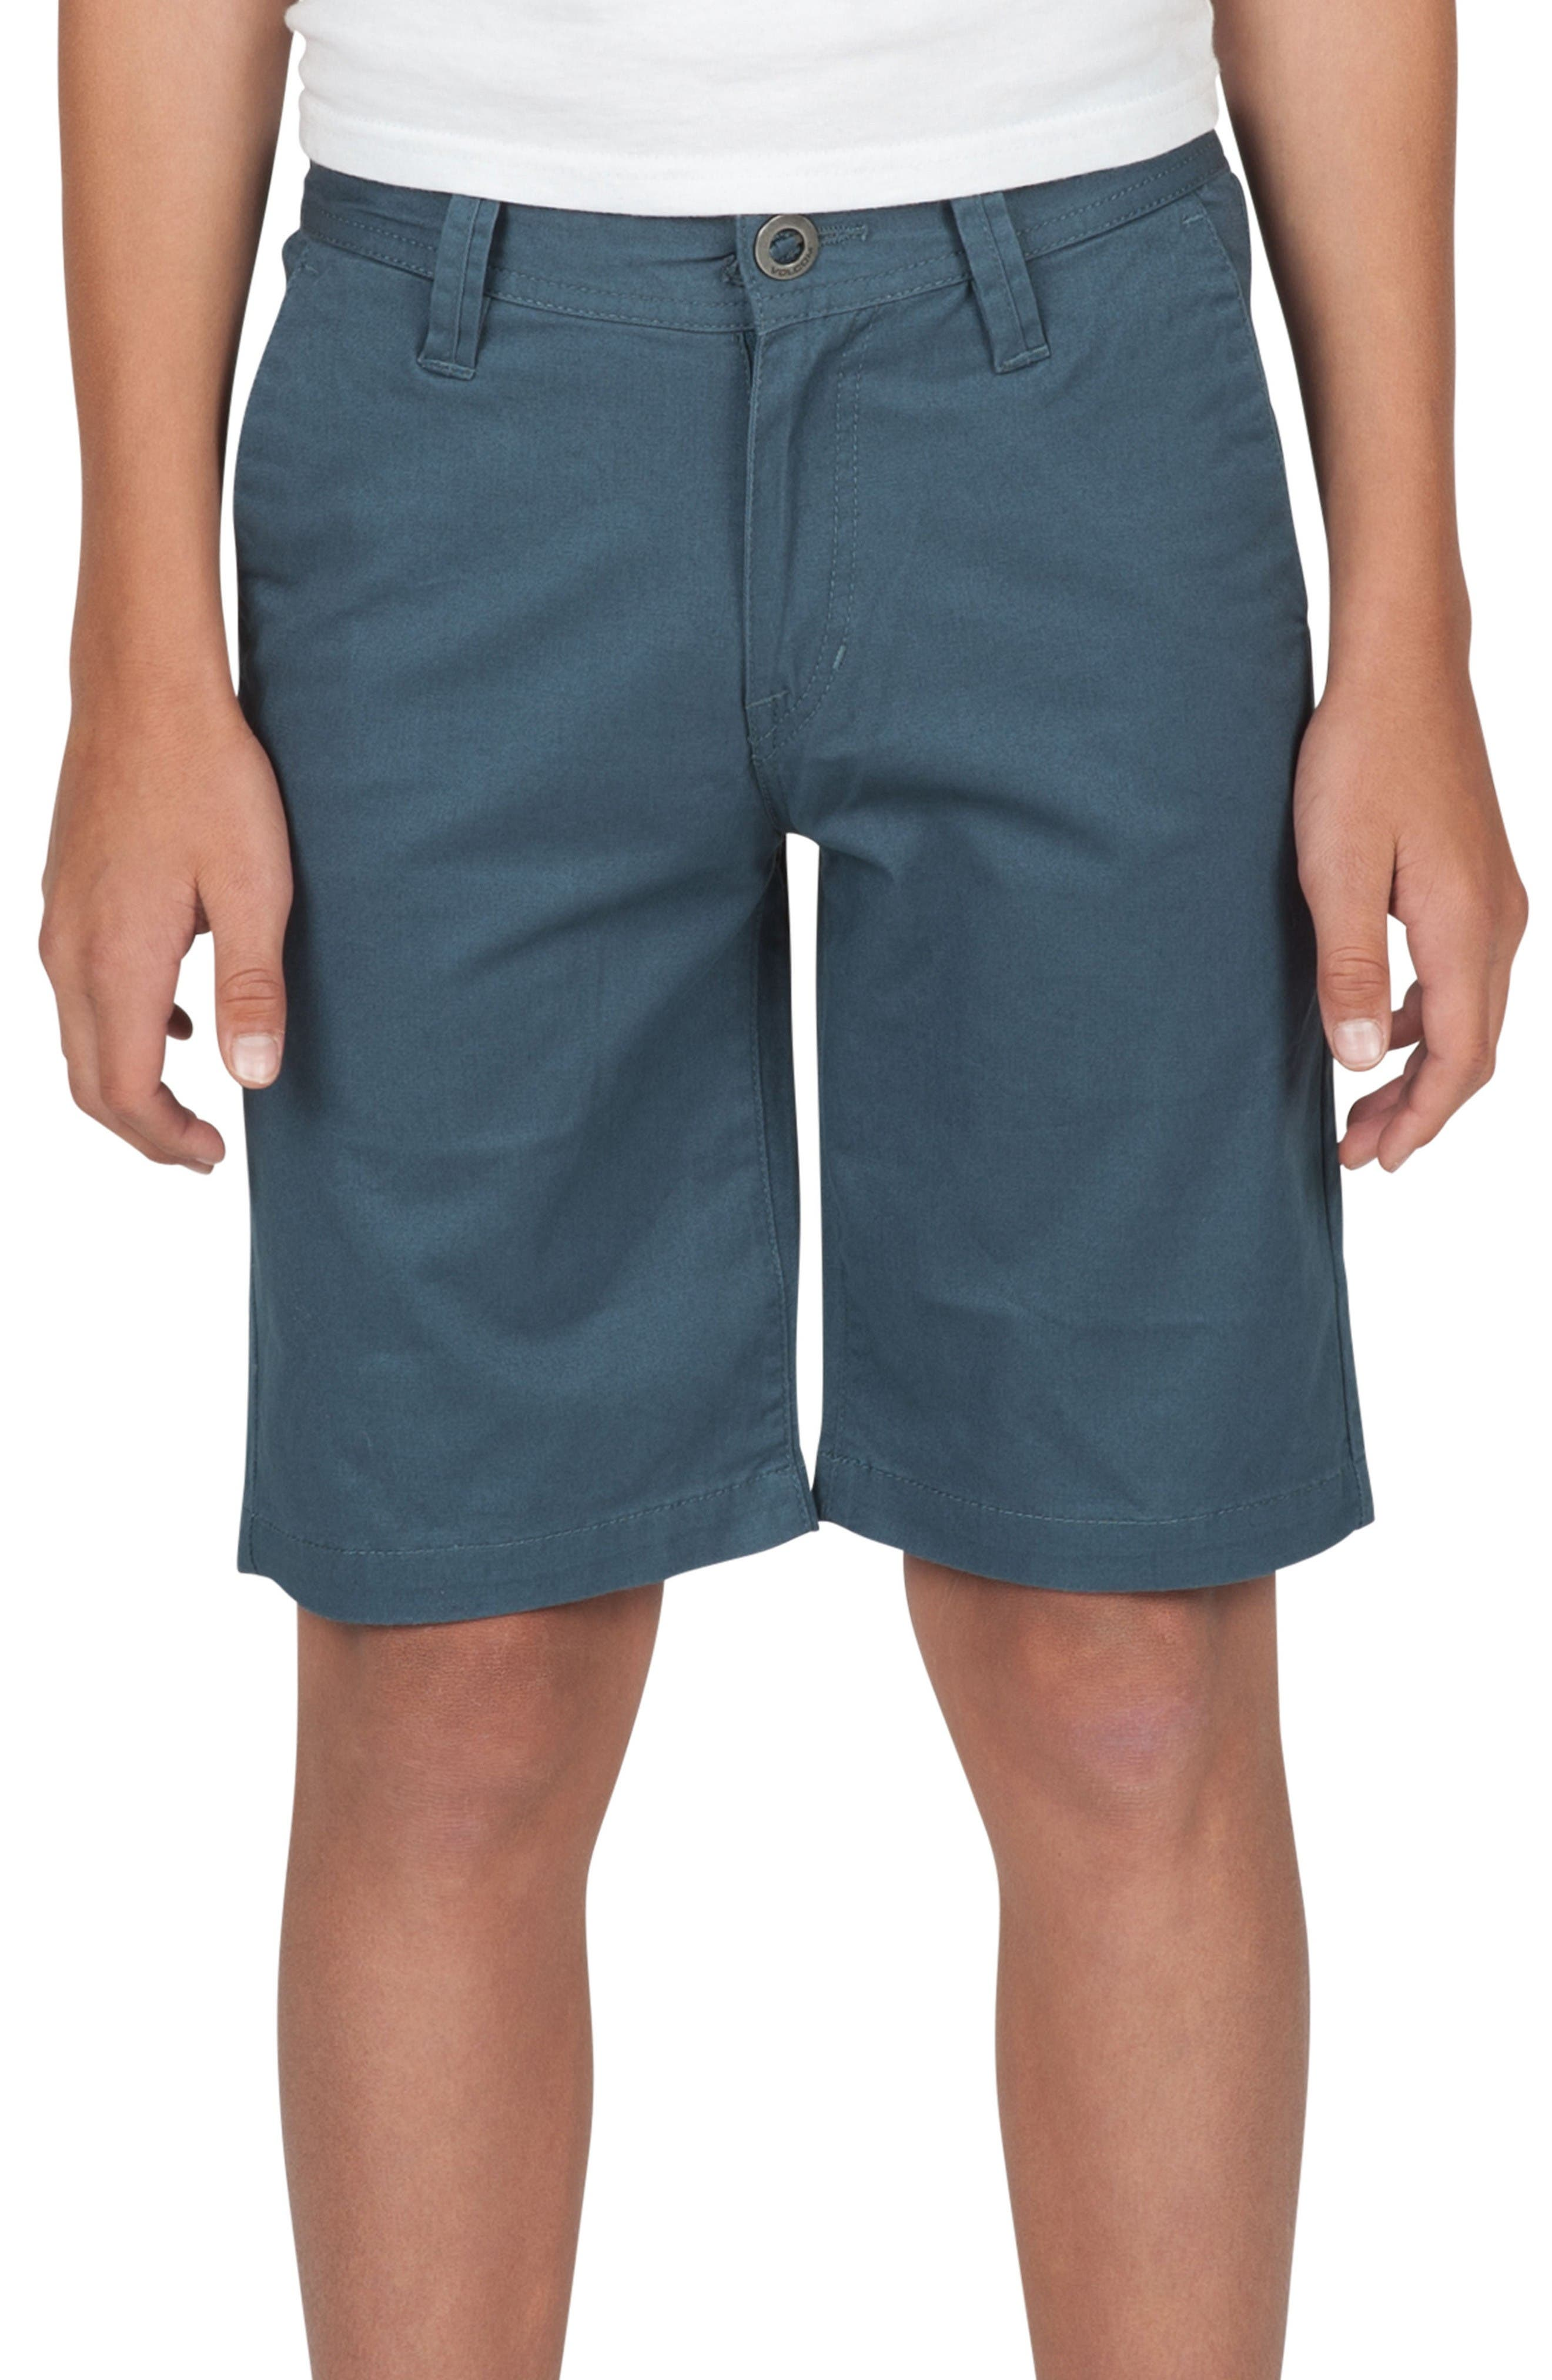 Alternate Image 1 Selected - Volcom Cotton Twill Shorts (Toddler Boys, Little Boys & Big Boys)